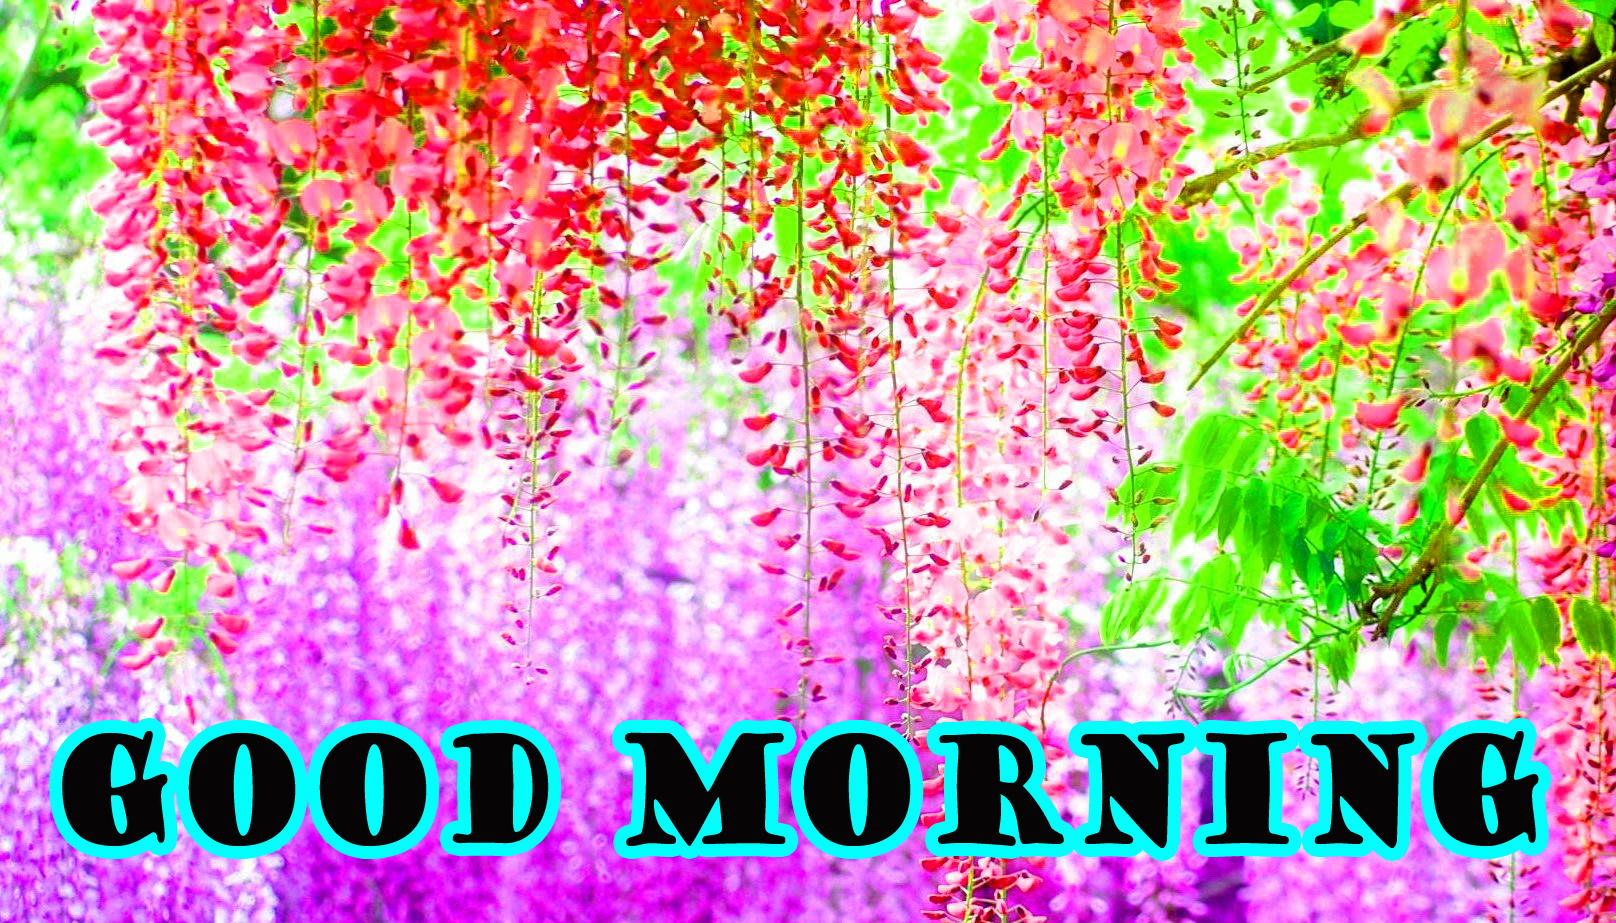 Good Morning Flowers Wallpaper Pictures Photo HD